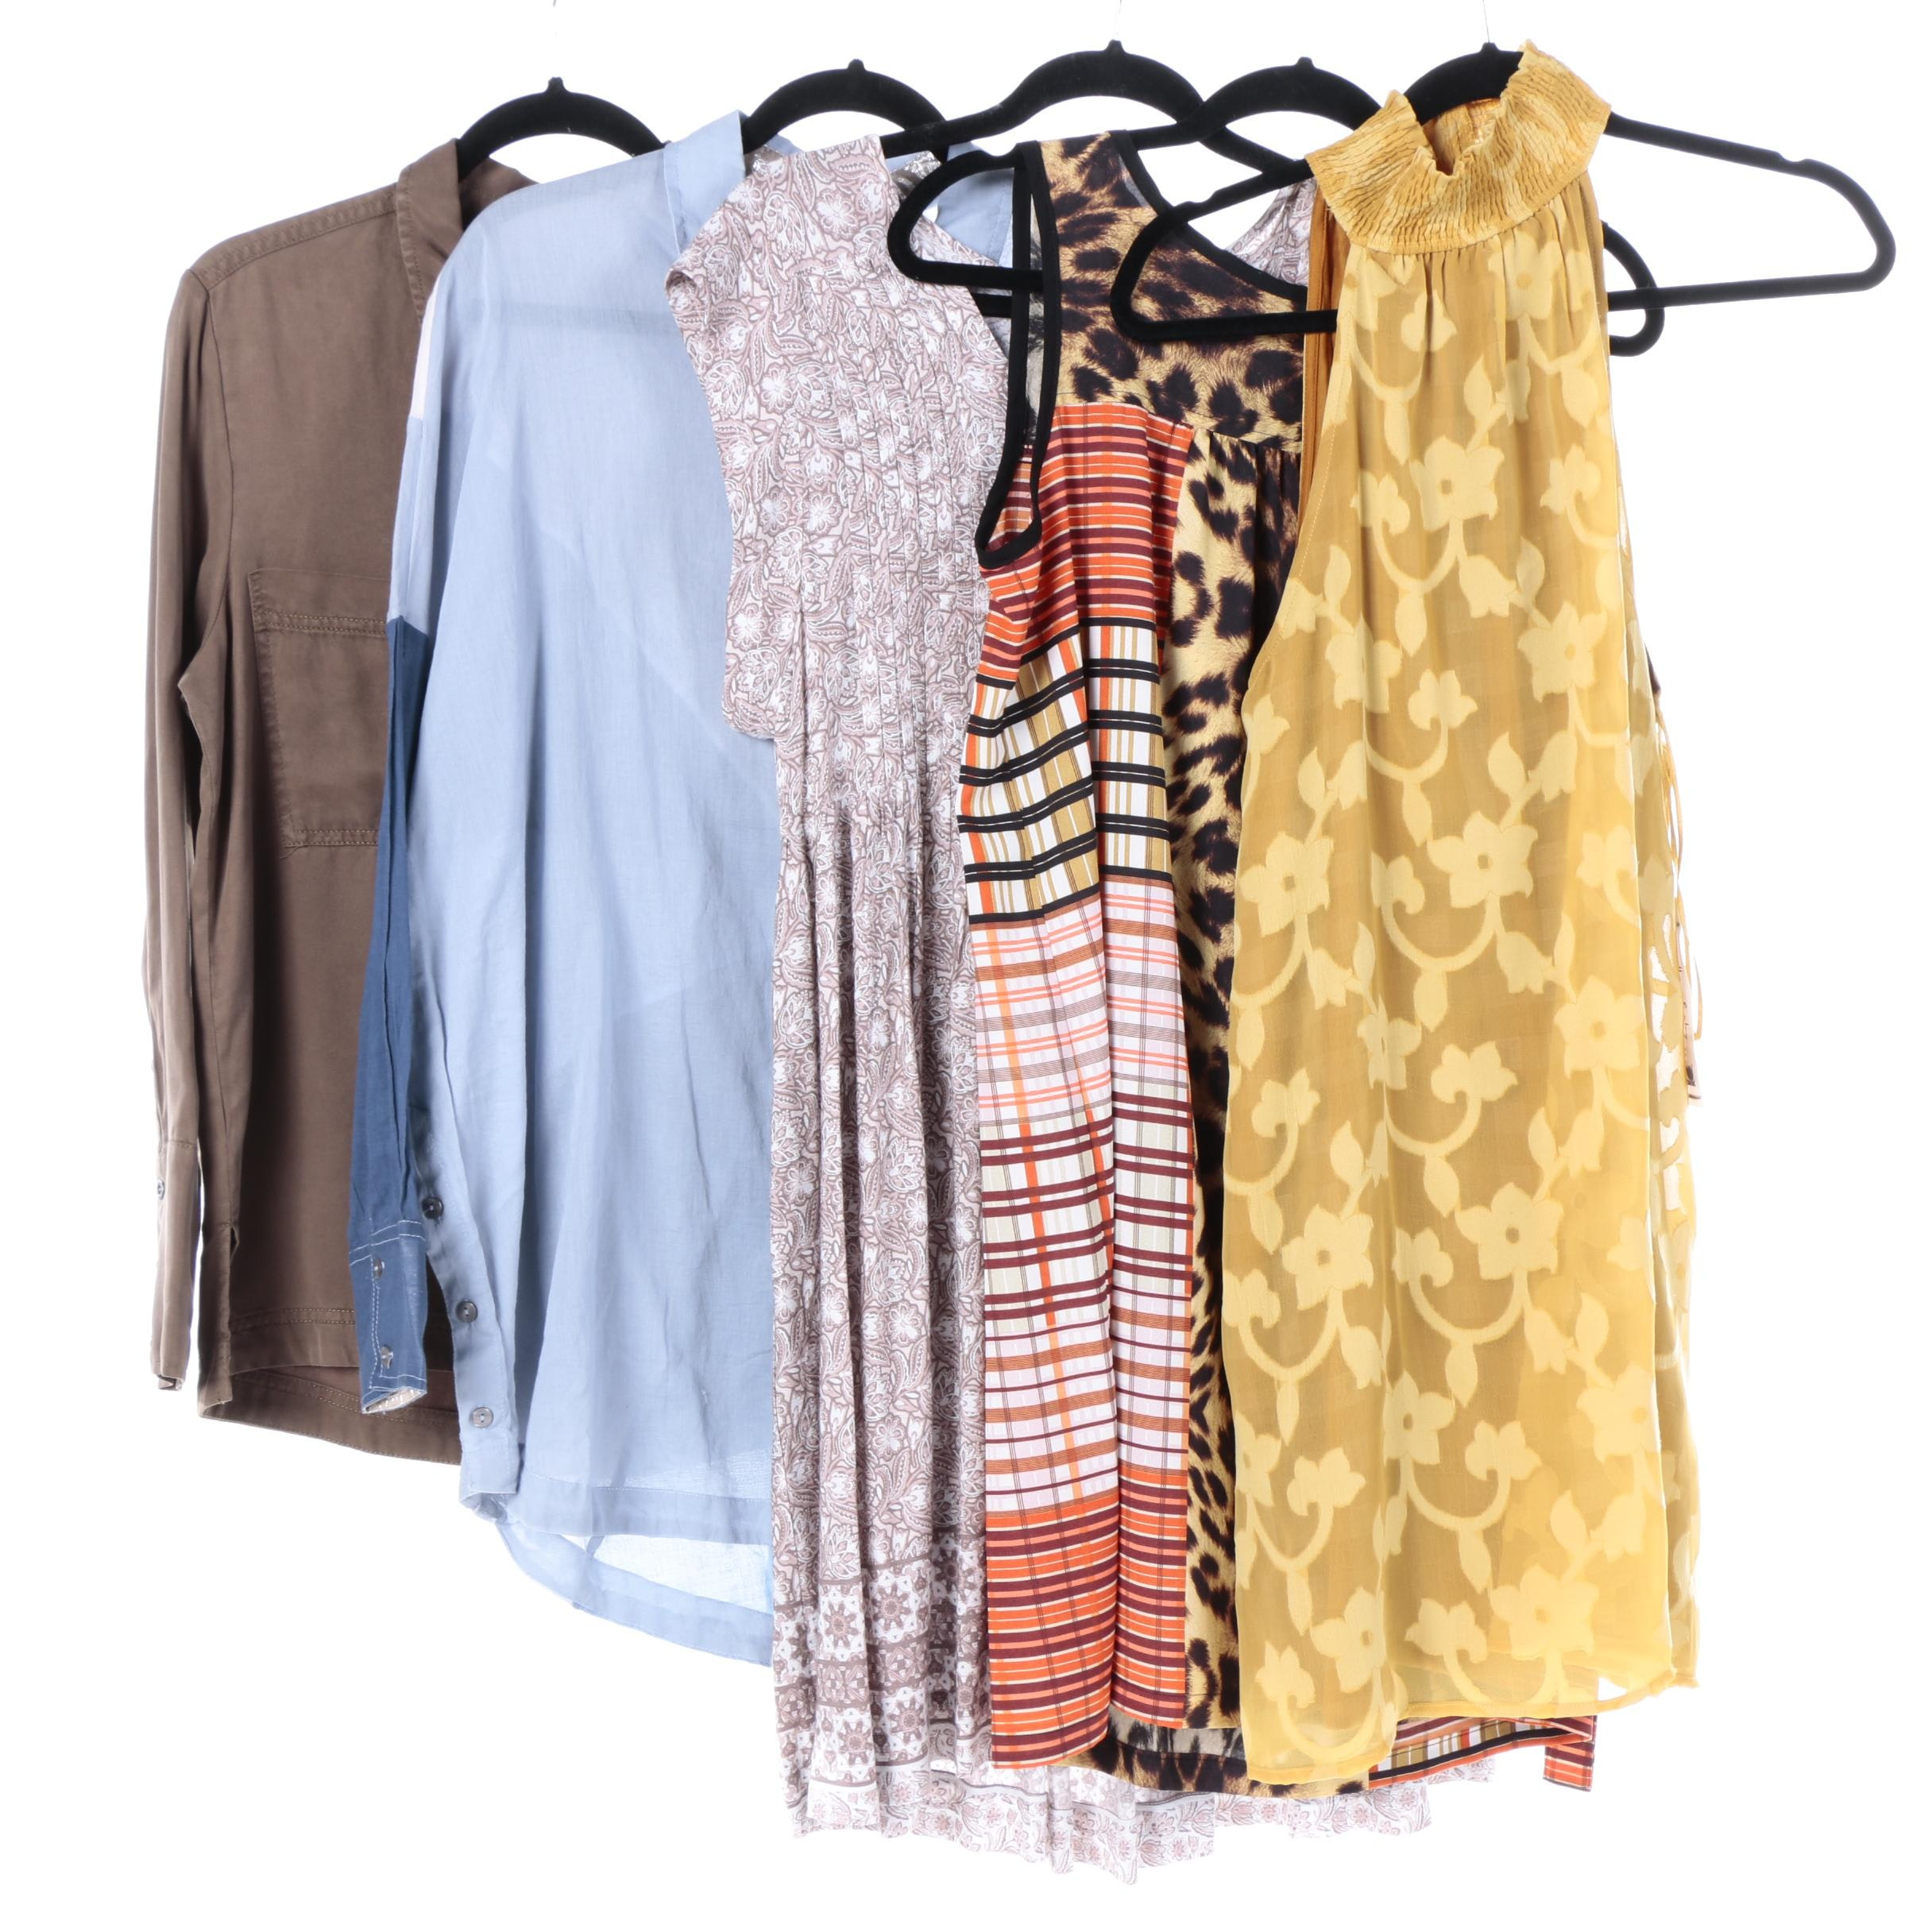 Women's Dresses and Shirts Including Free People and Willow & Clay